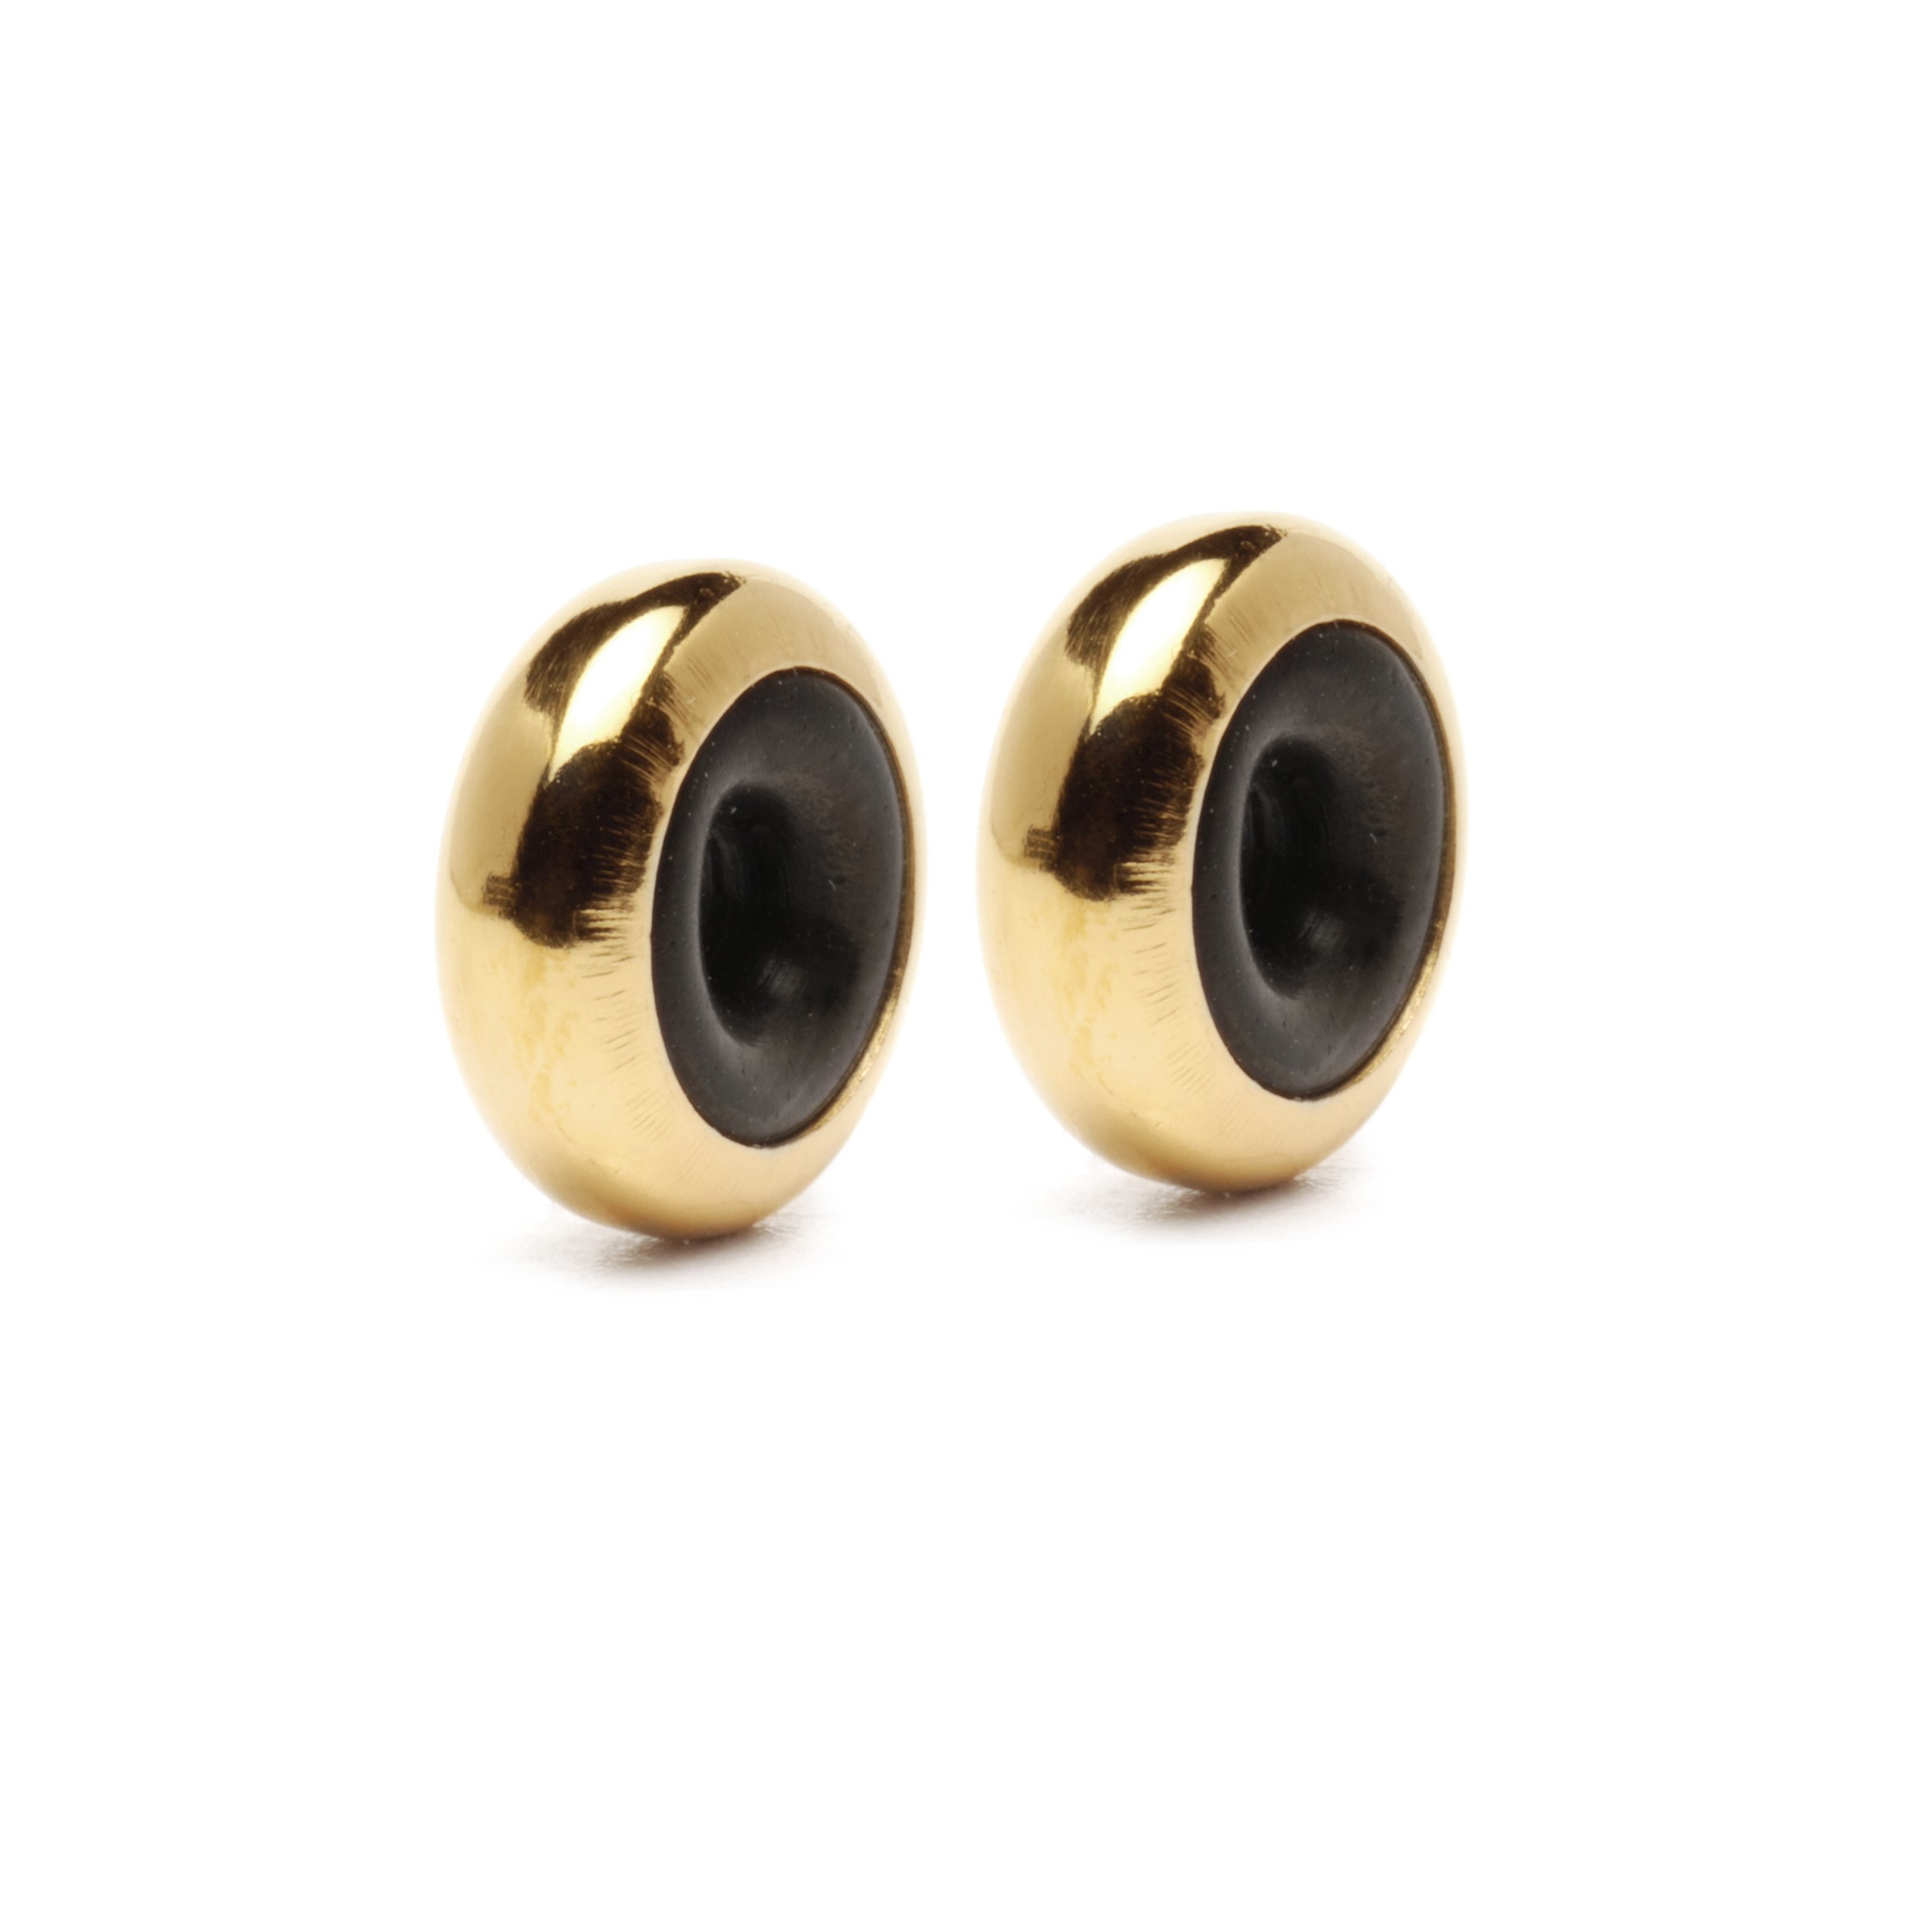 Gold Spacer (2 pcs)